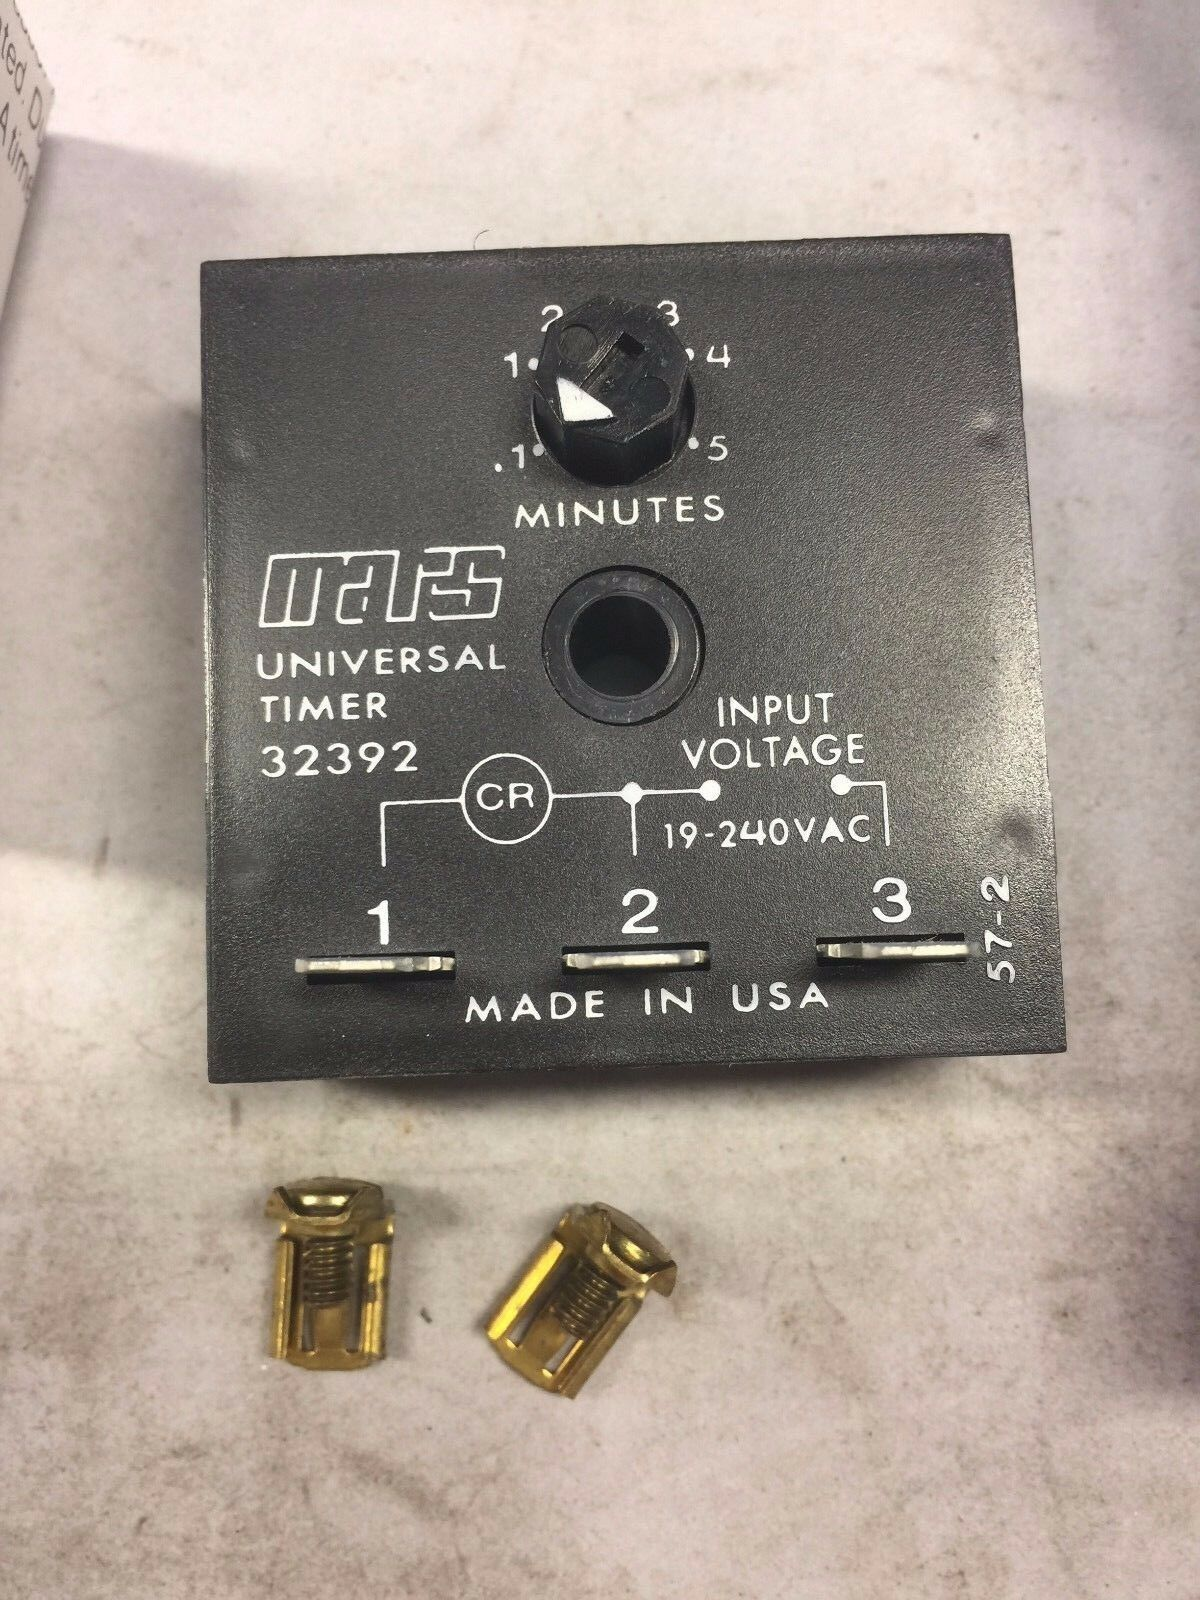 Mars 32392 Solid State Delay Timer 685744-32392 | eBay